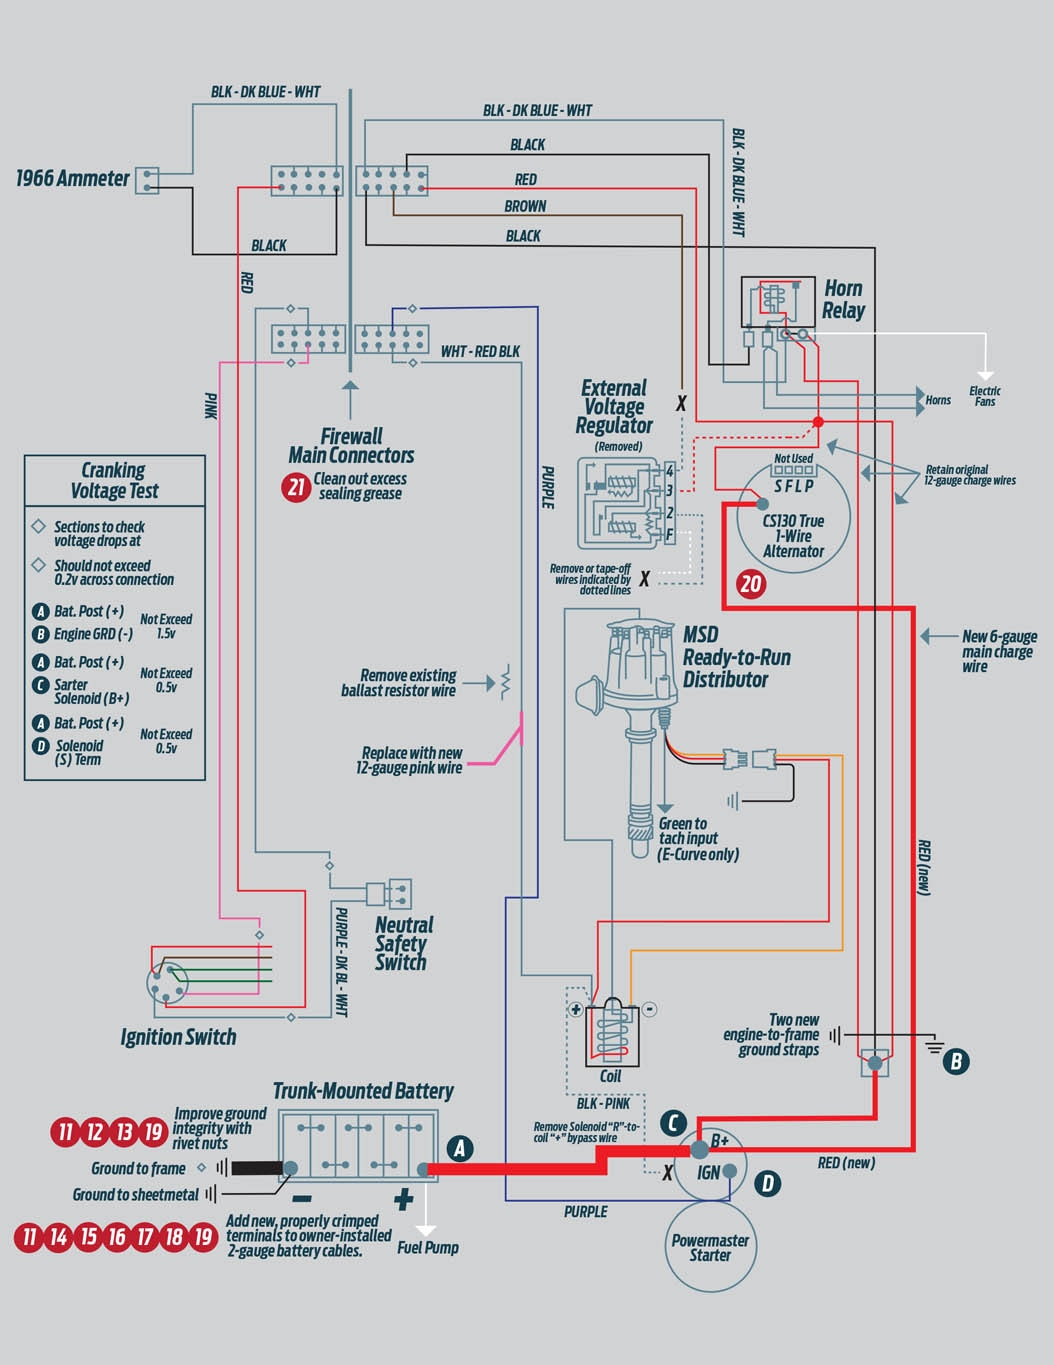 medium resolution of 1966 chevelle dash wiring harness free download diagram wiring library 1966 chevelle wiring diagram online 1966